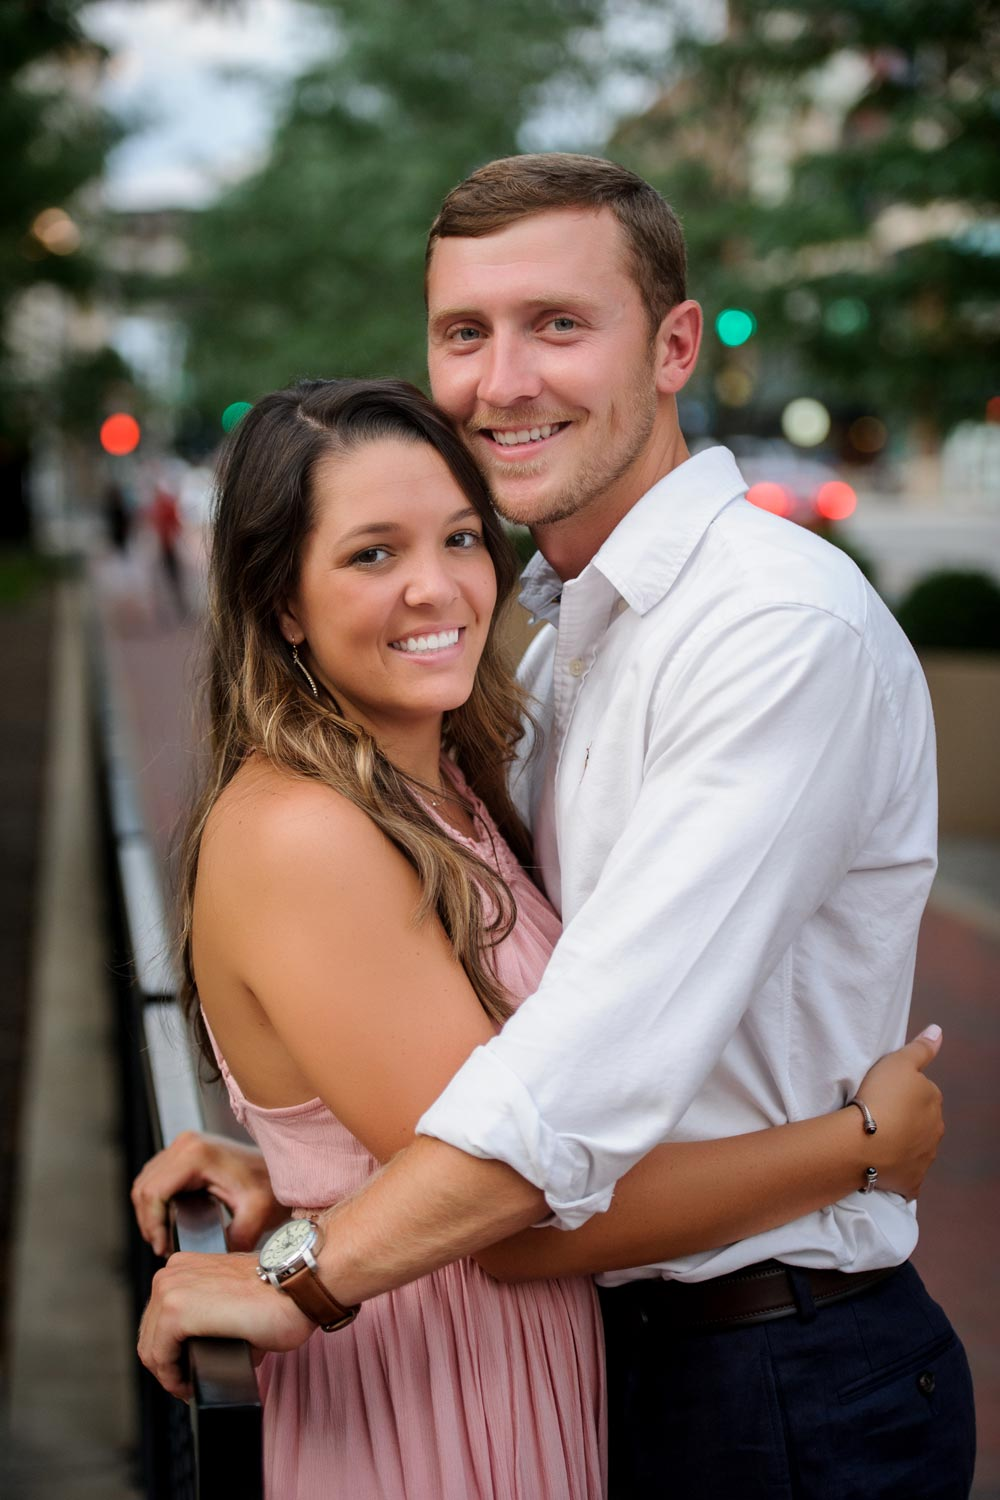 engagement-portraits-scott-walz-studio-walz47.jpg